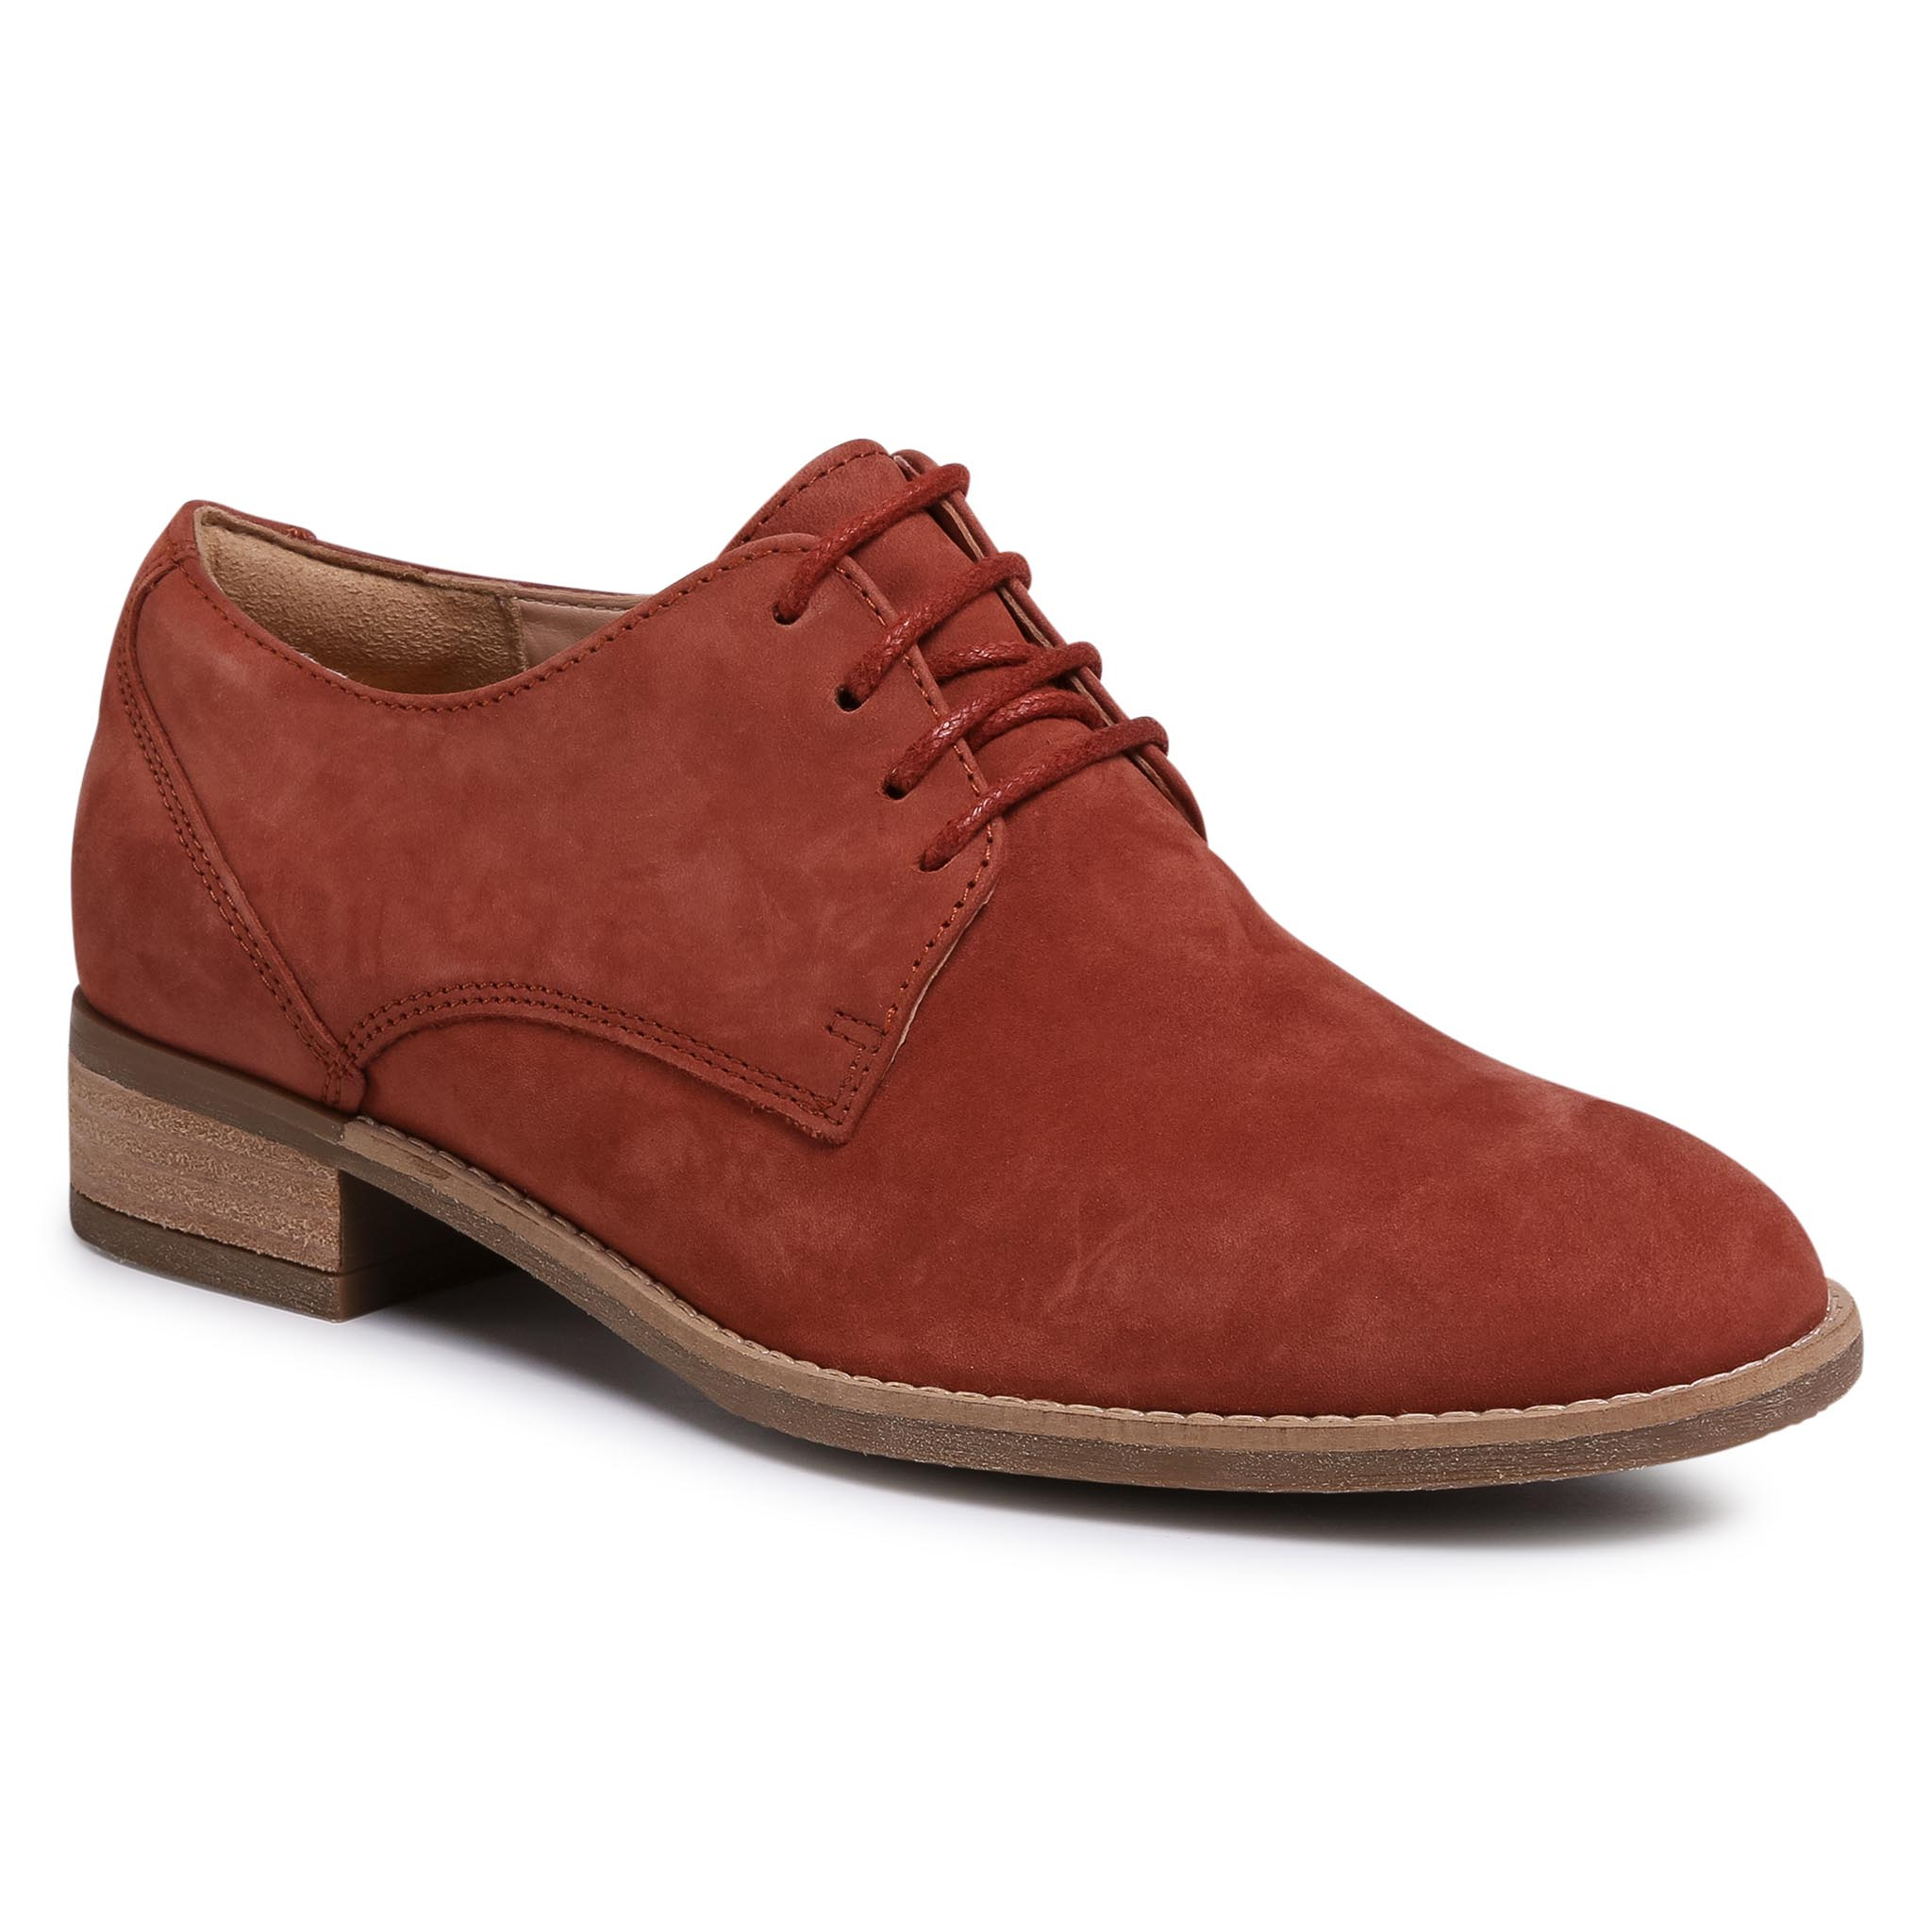 Oxford Clarks - Netley Bloom 261407834 Rust Nubuck imagine epantofi.ro 2021